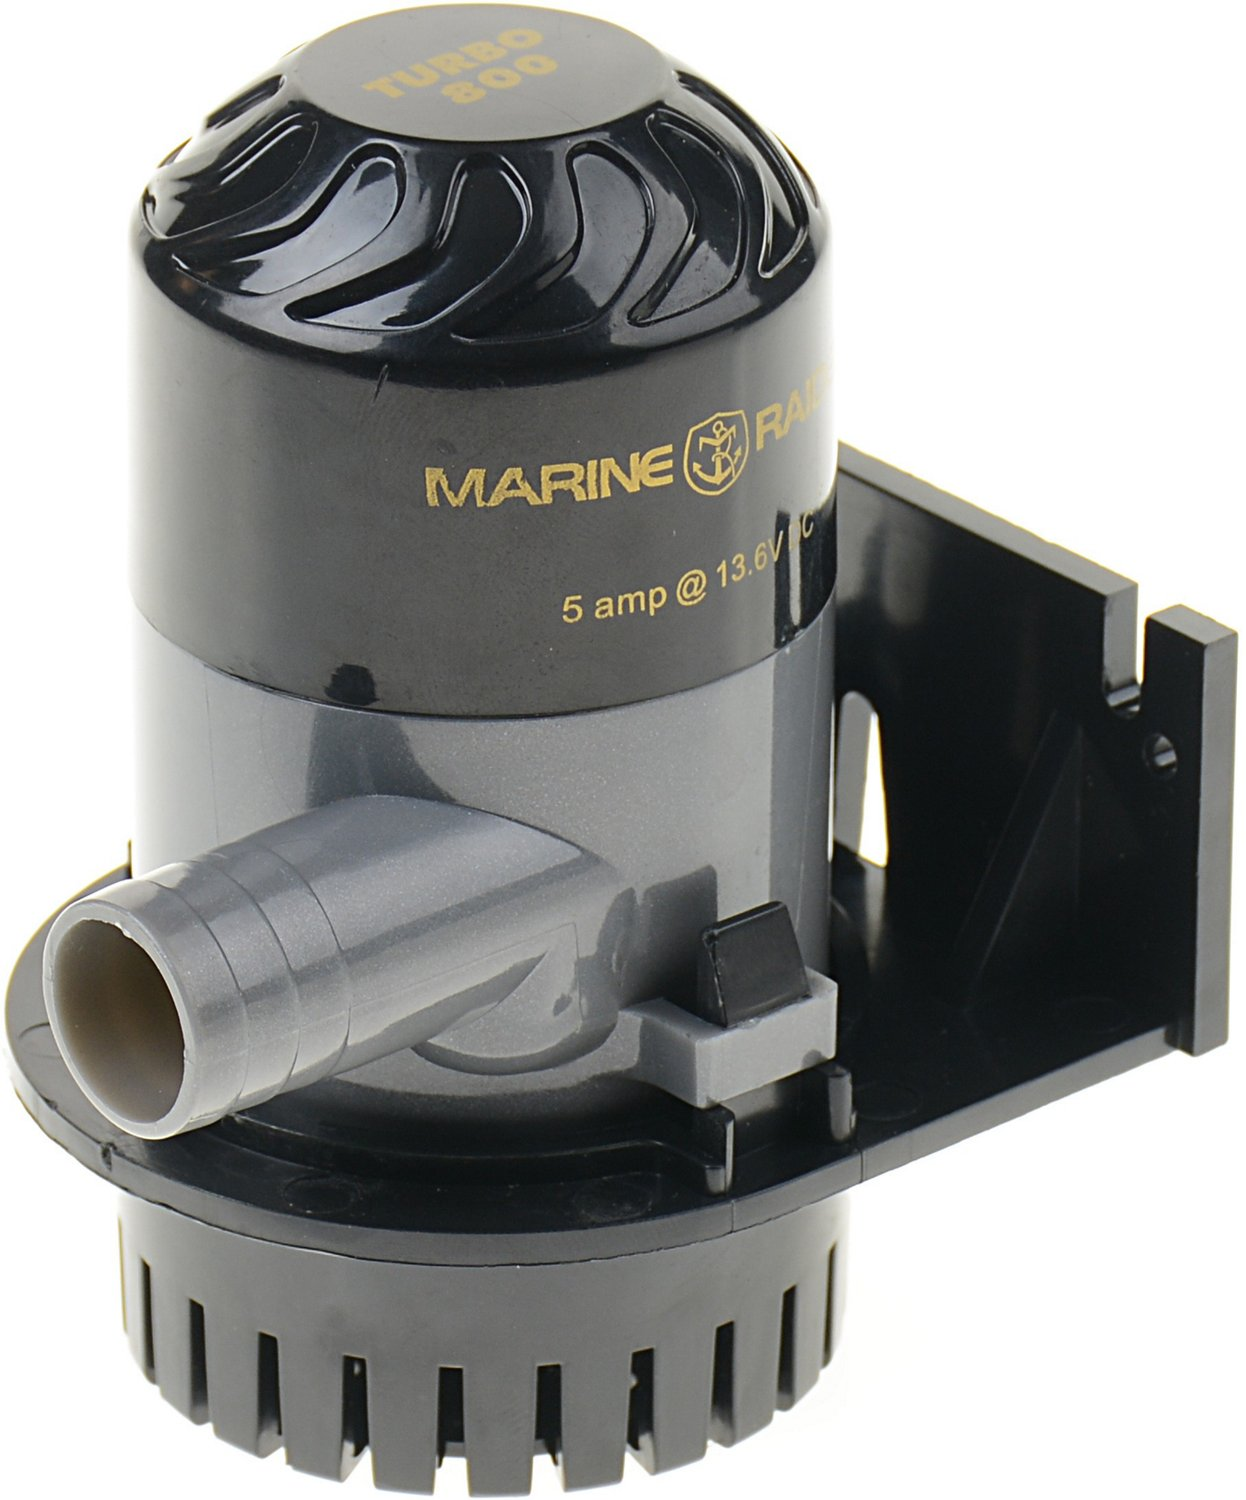 hight resolution of display product reviews for marine raider 800 gph bilge pump